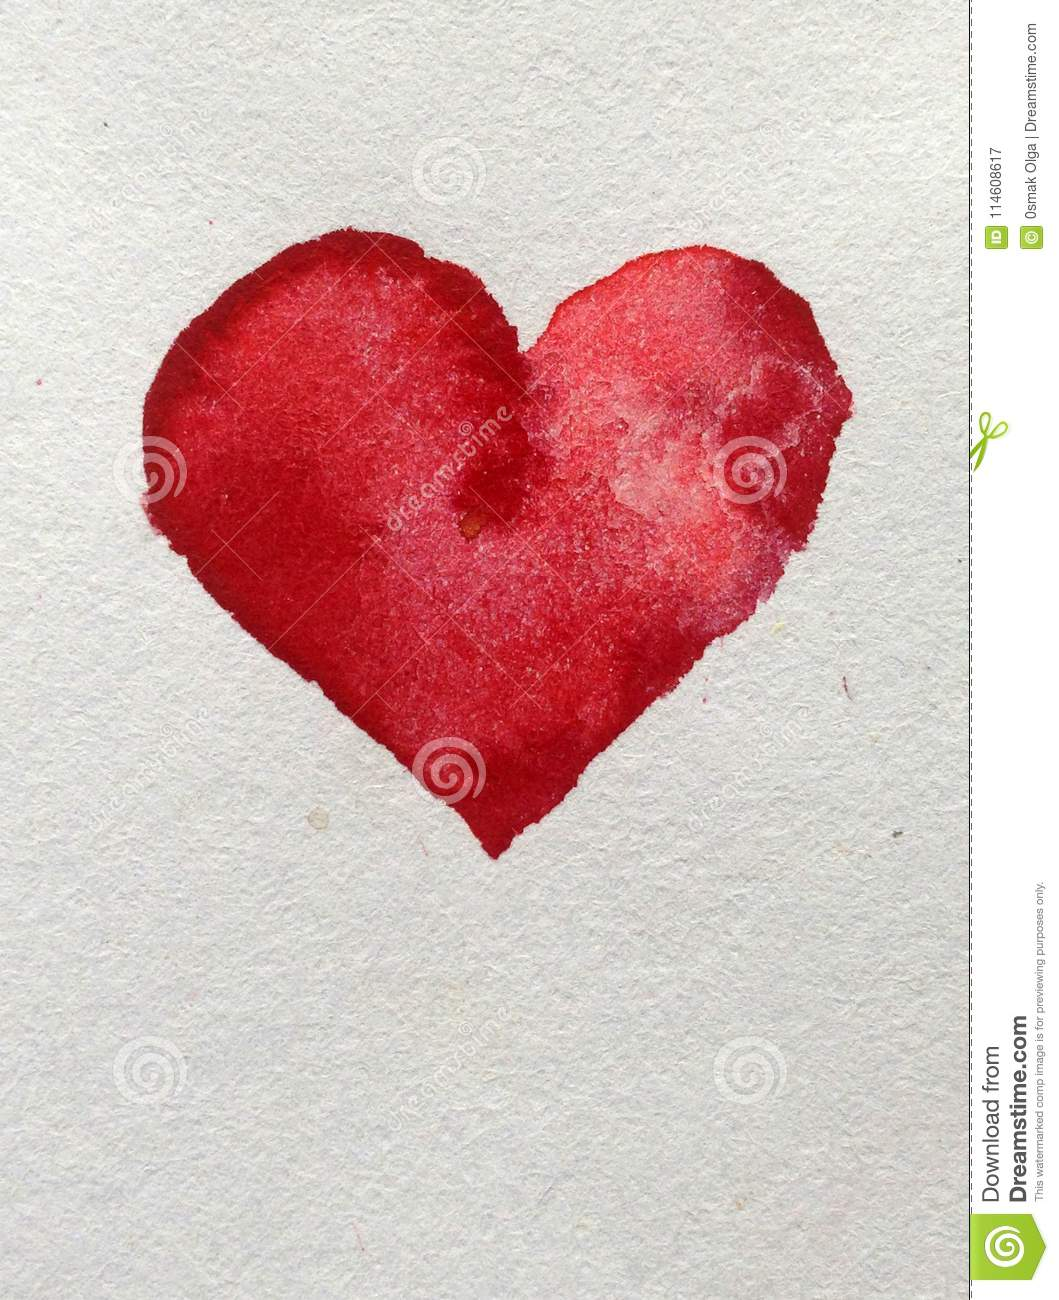 watercolor art abstract background bright blurred textured decoration handmade beautiful red love heart wallpaper watercolor art 114608617